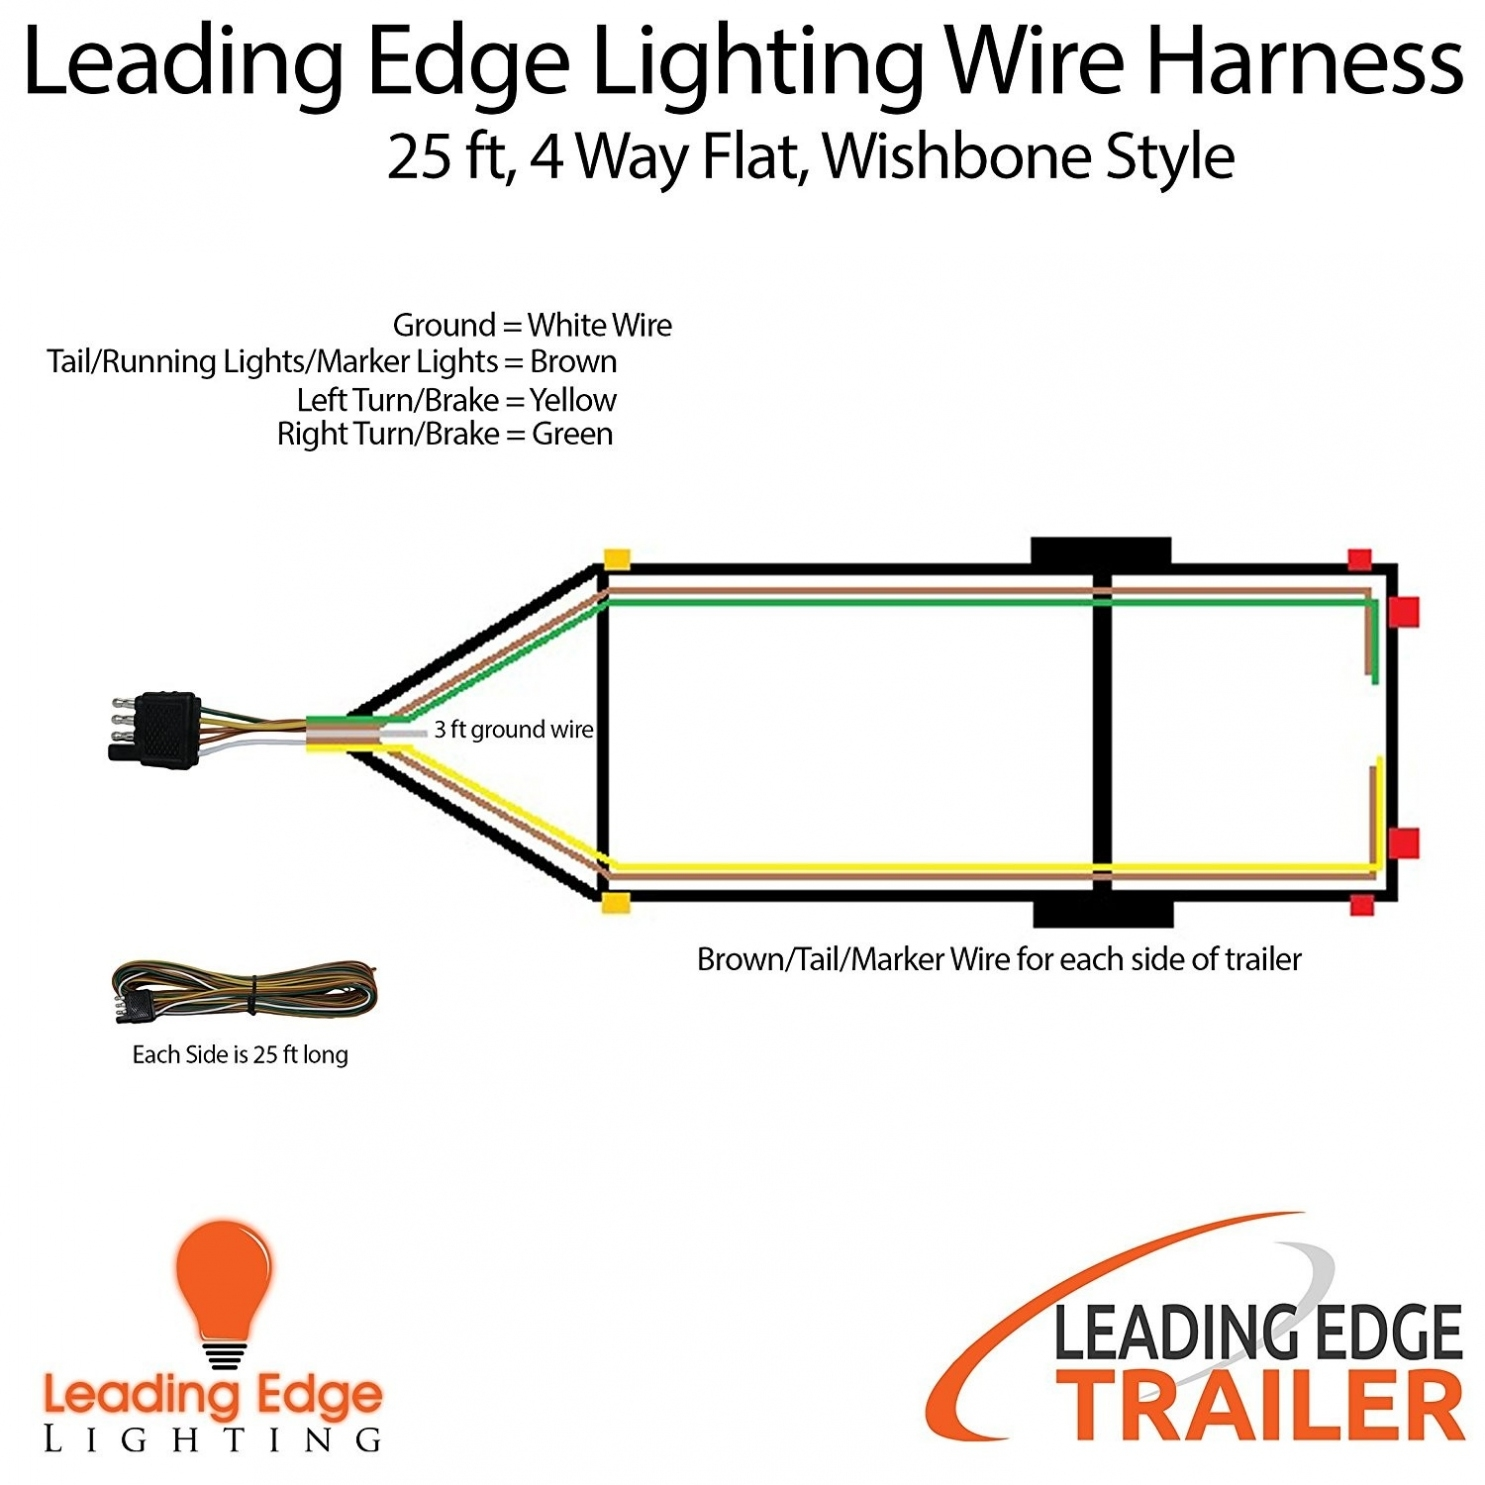 5 wire to 4 wire trailer wiring diagram | free wiring diagram 50 amp plug wiring diagram schematic